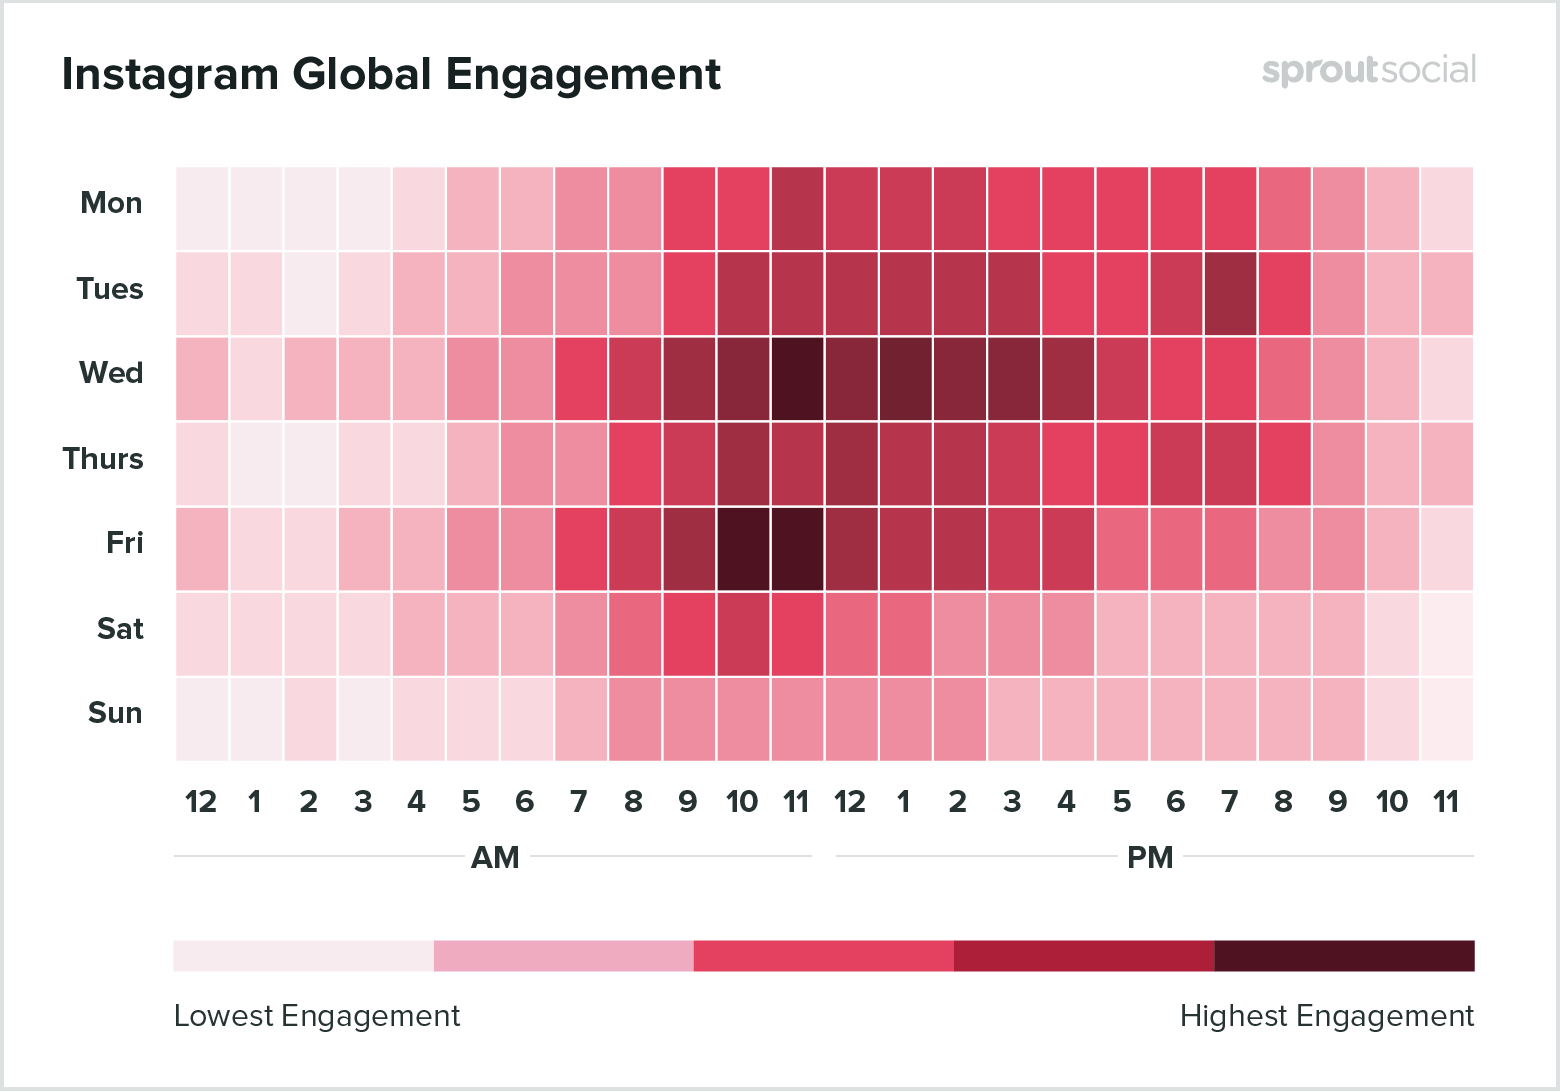 instagram highest engagement times and days